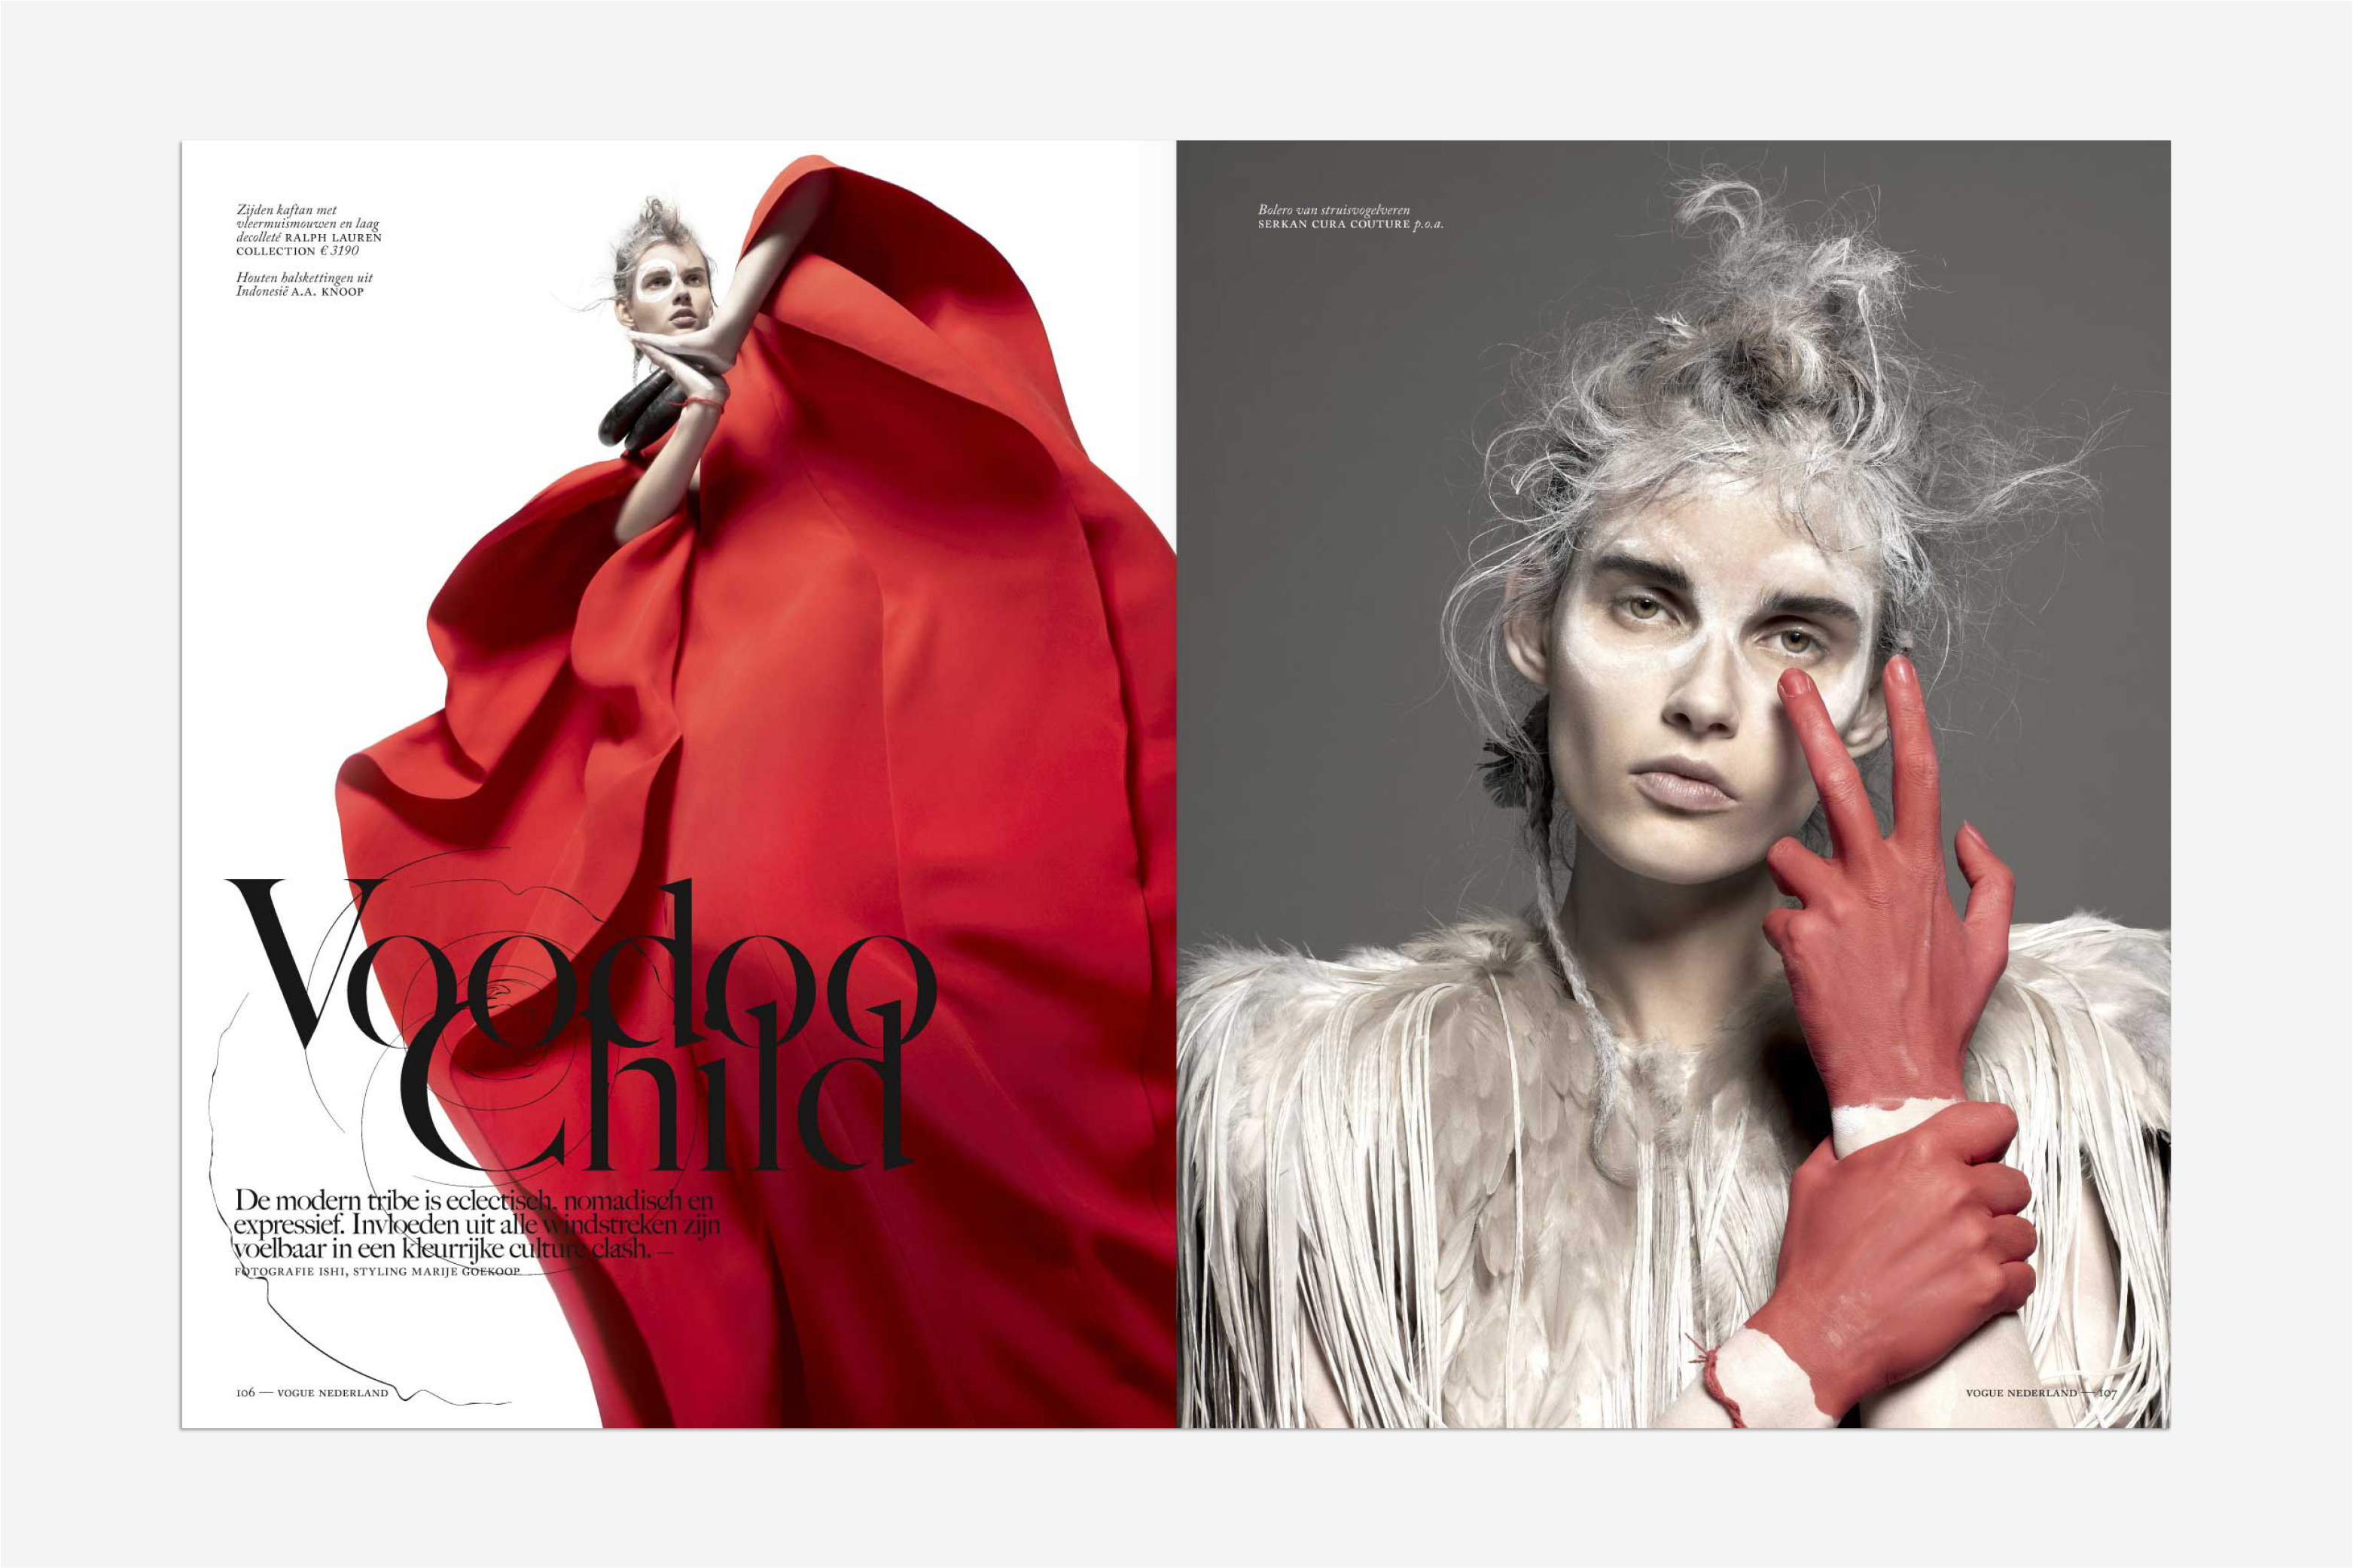 Vogue nederland, magazine, editorial design